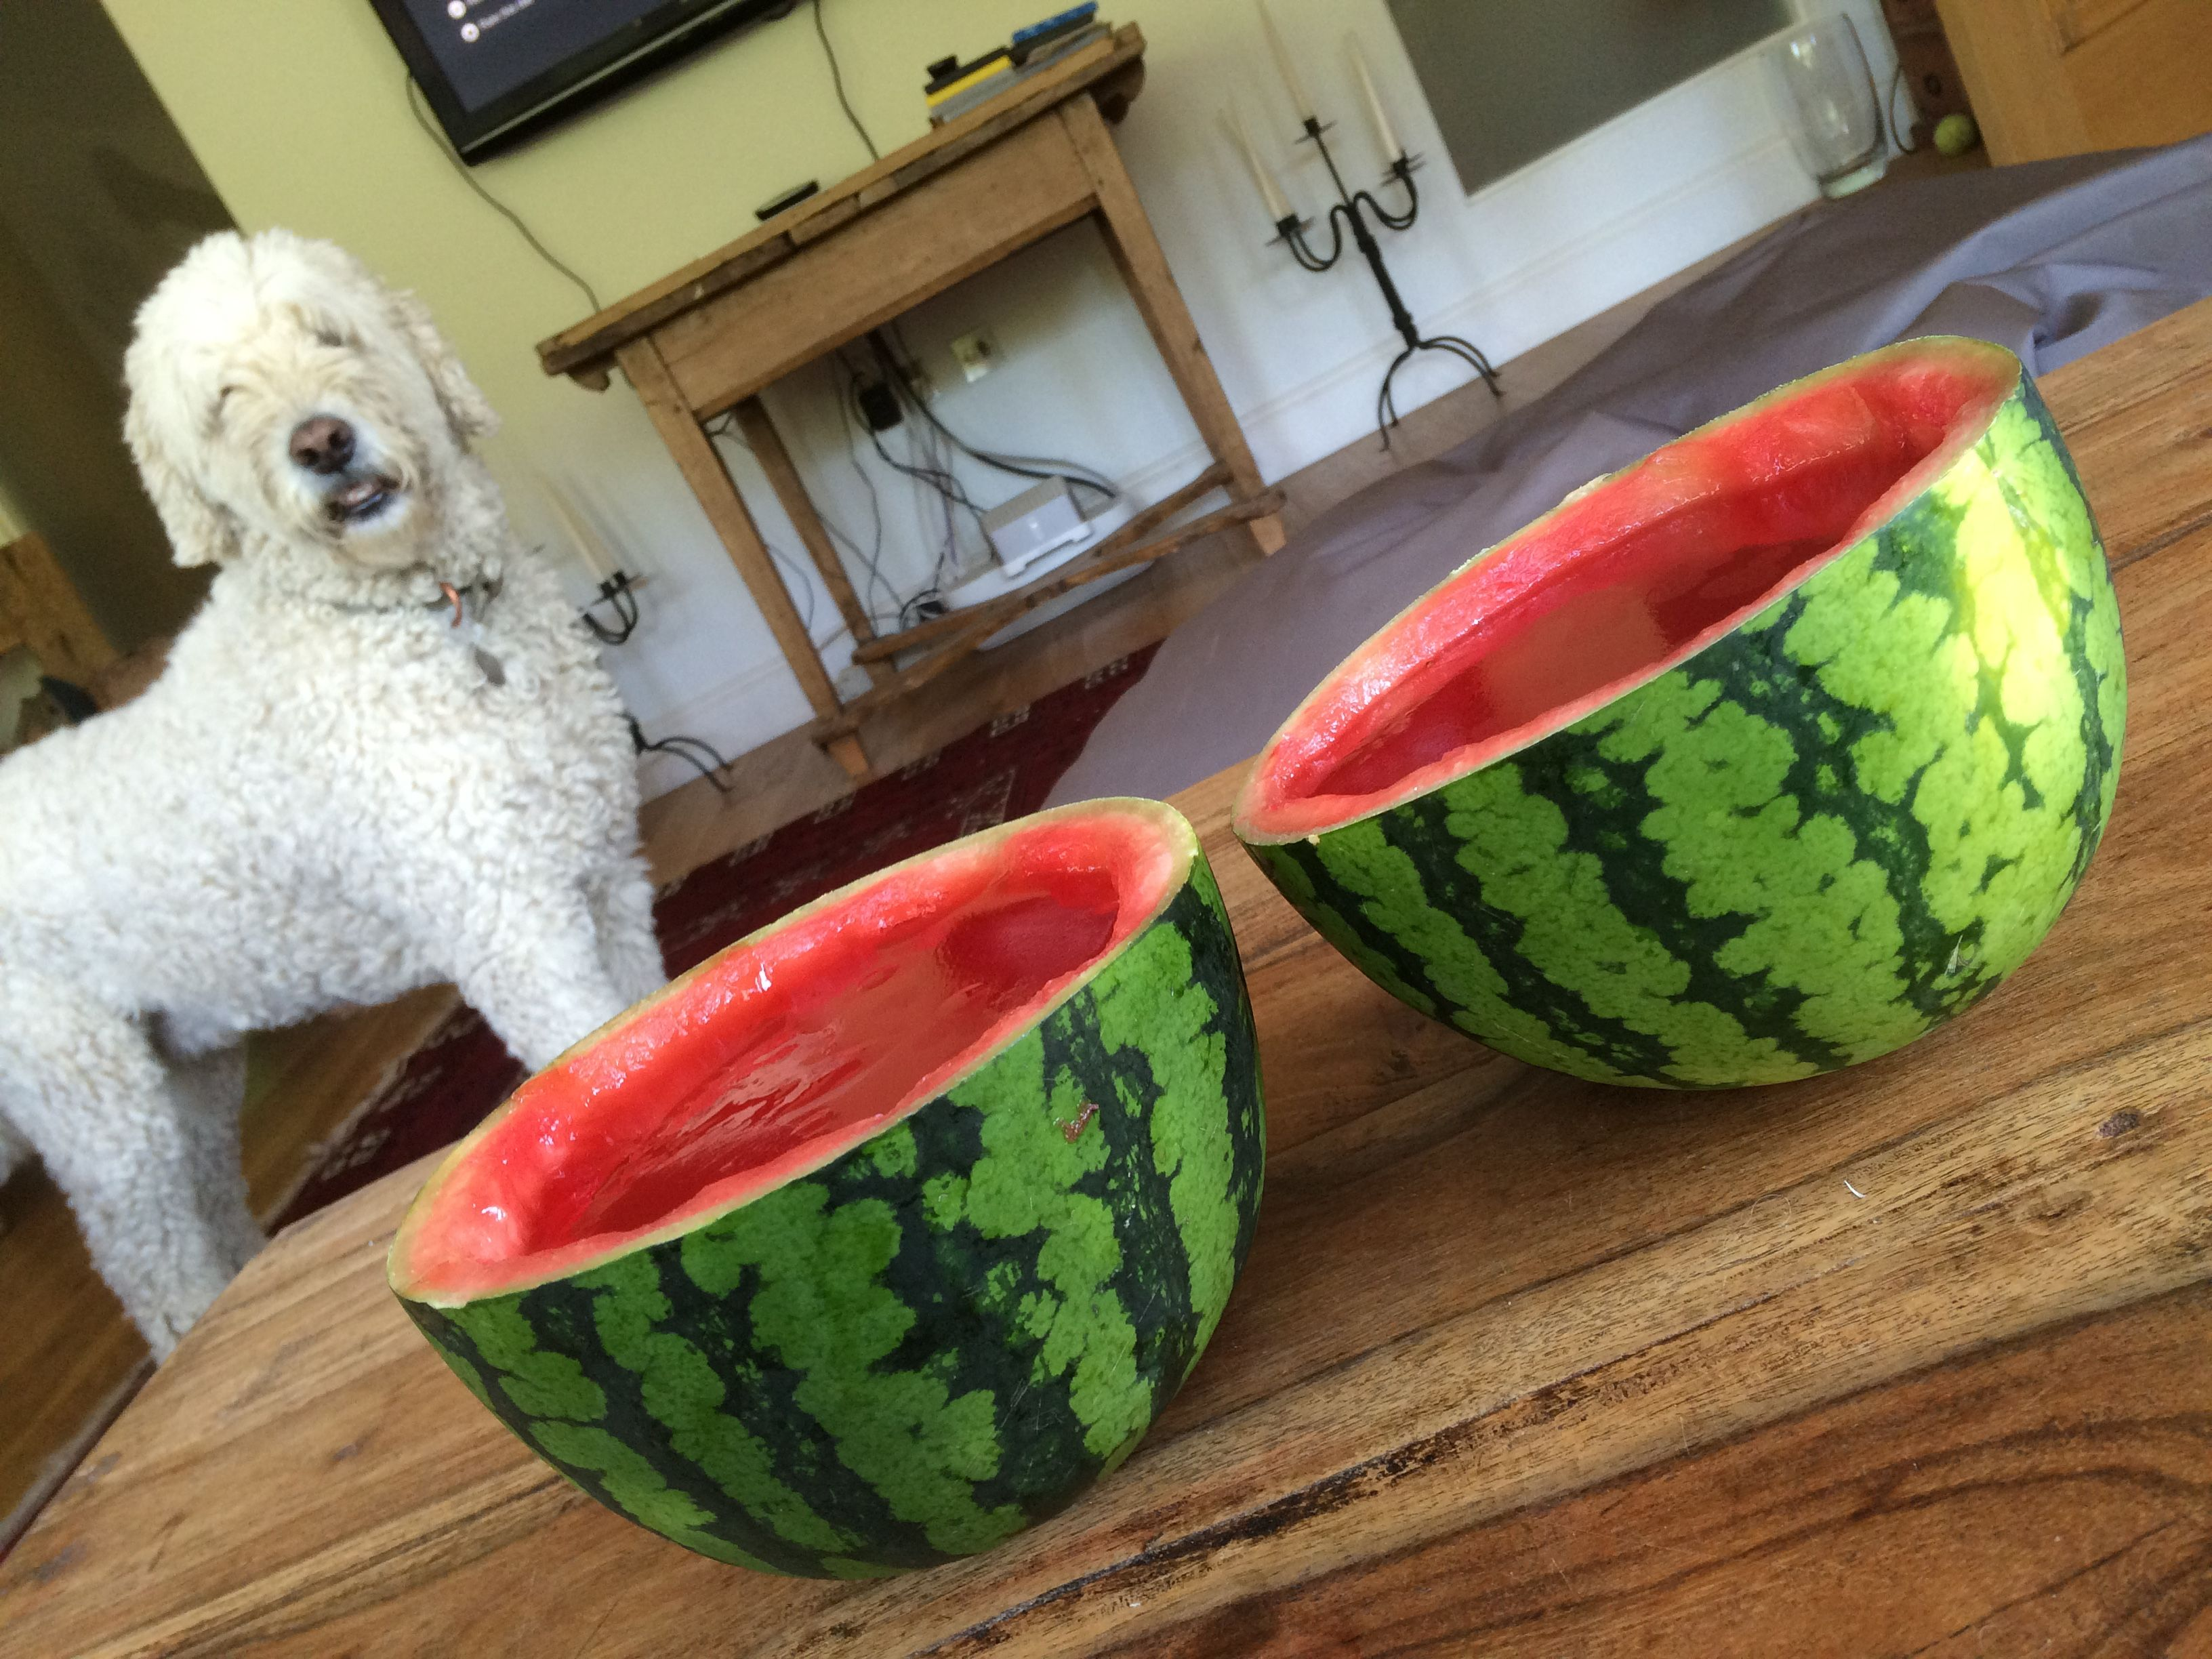 Watermelon Jelly. Scoop out the watermelon from its rine and freeze for a snack later then fill will red jelly for a fun party pudding.